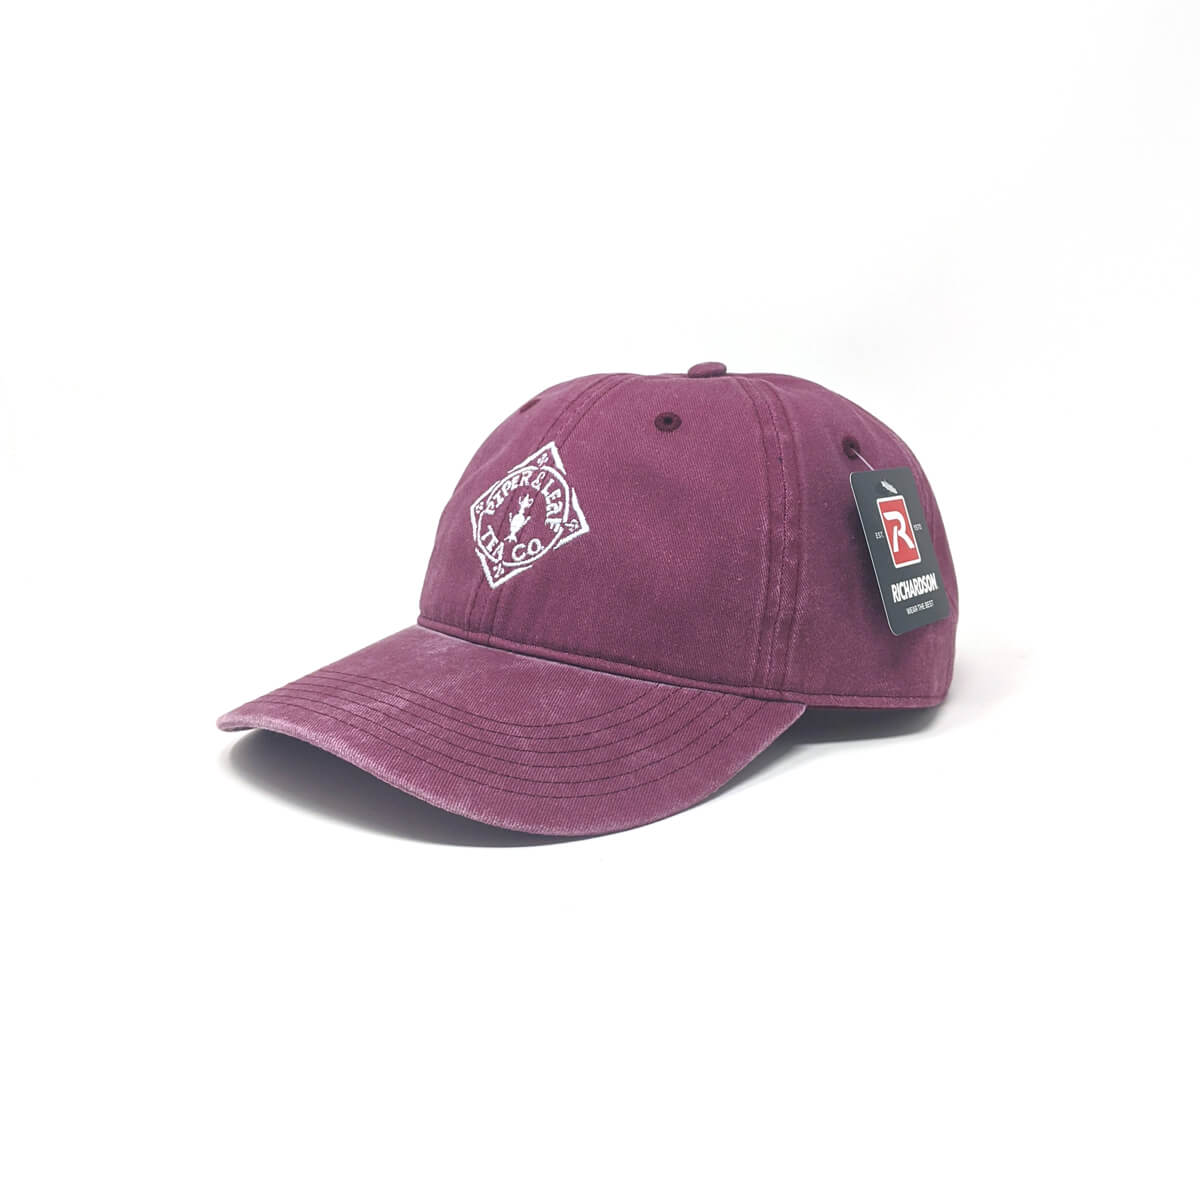 Piper & Leaf diamond logo denim hats - Briar Pink